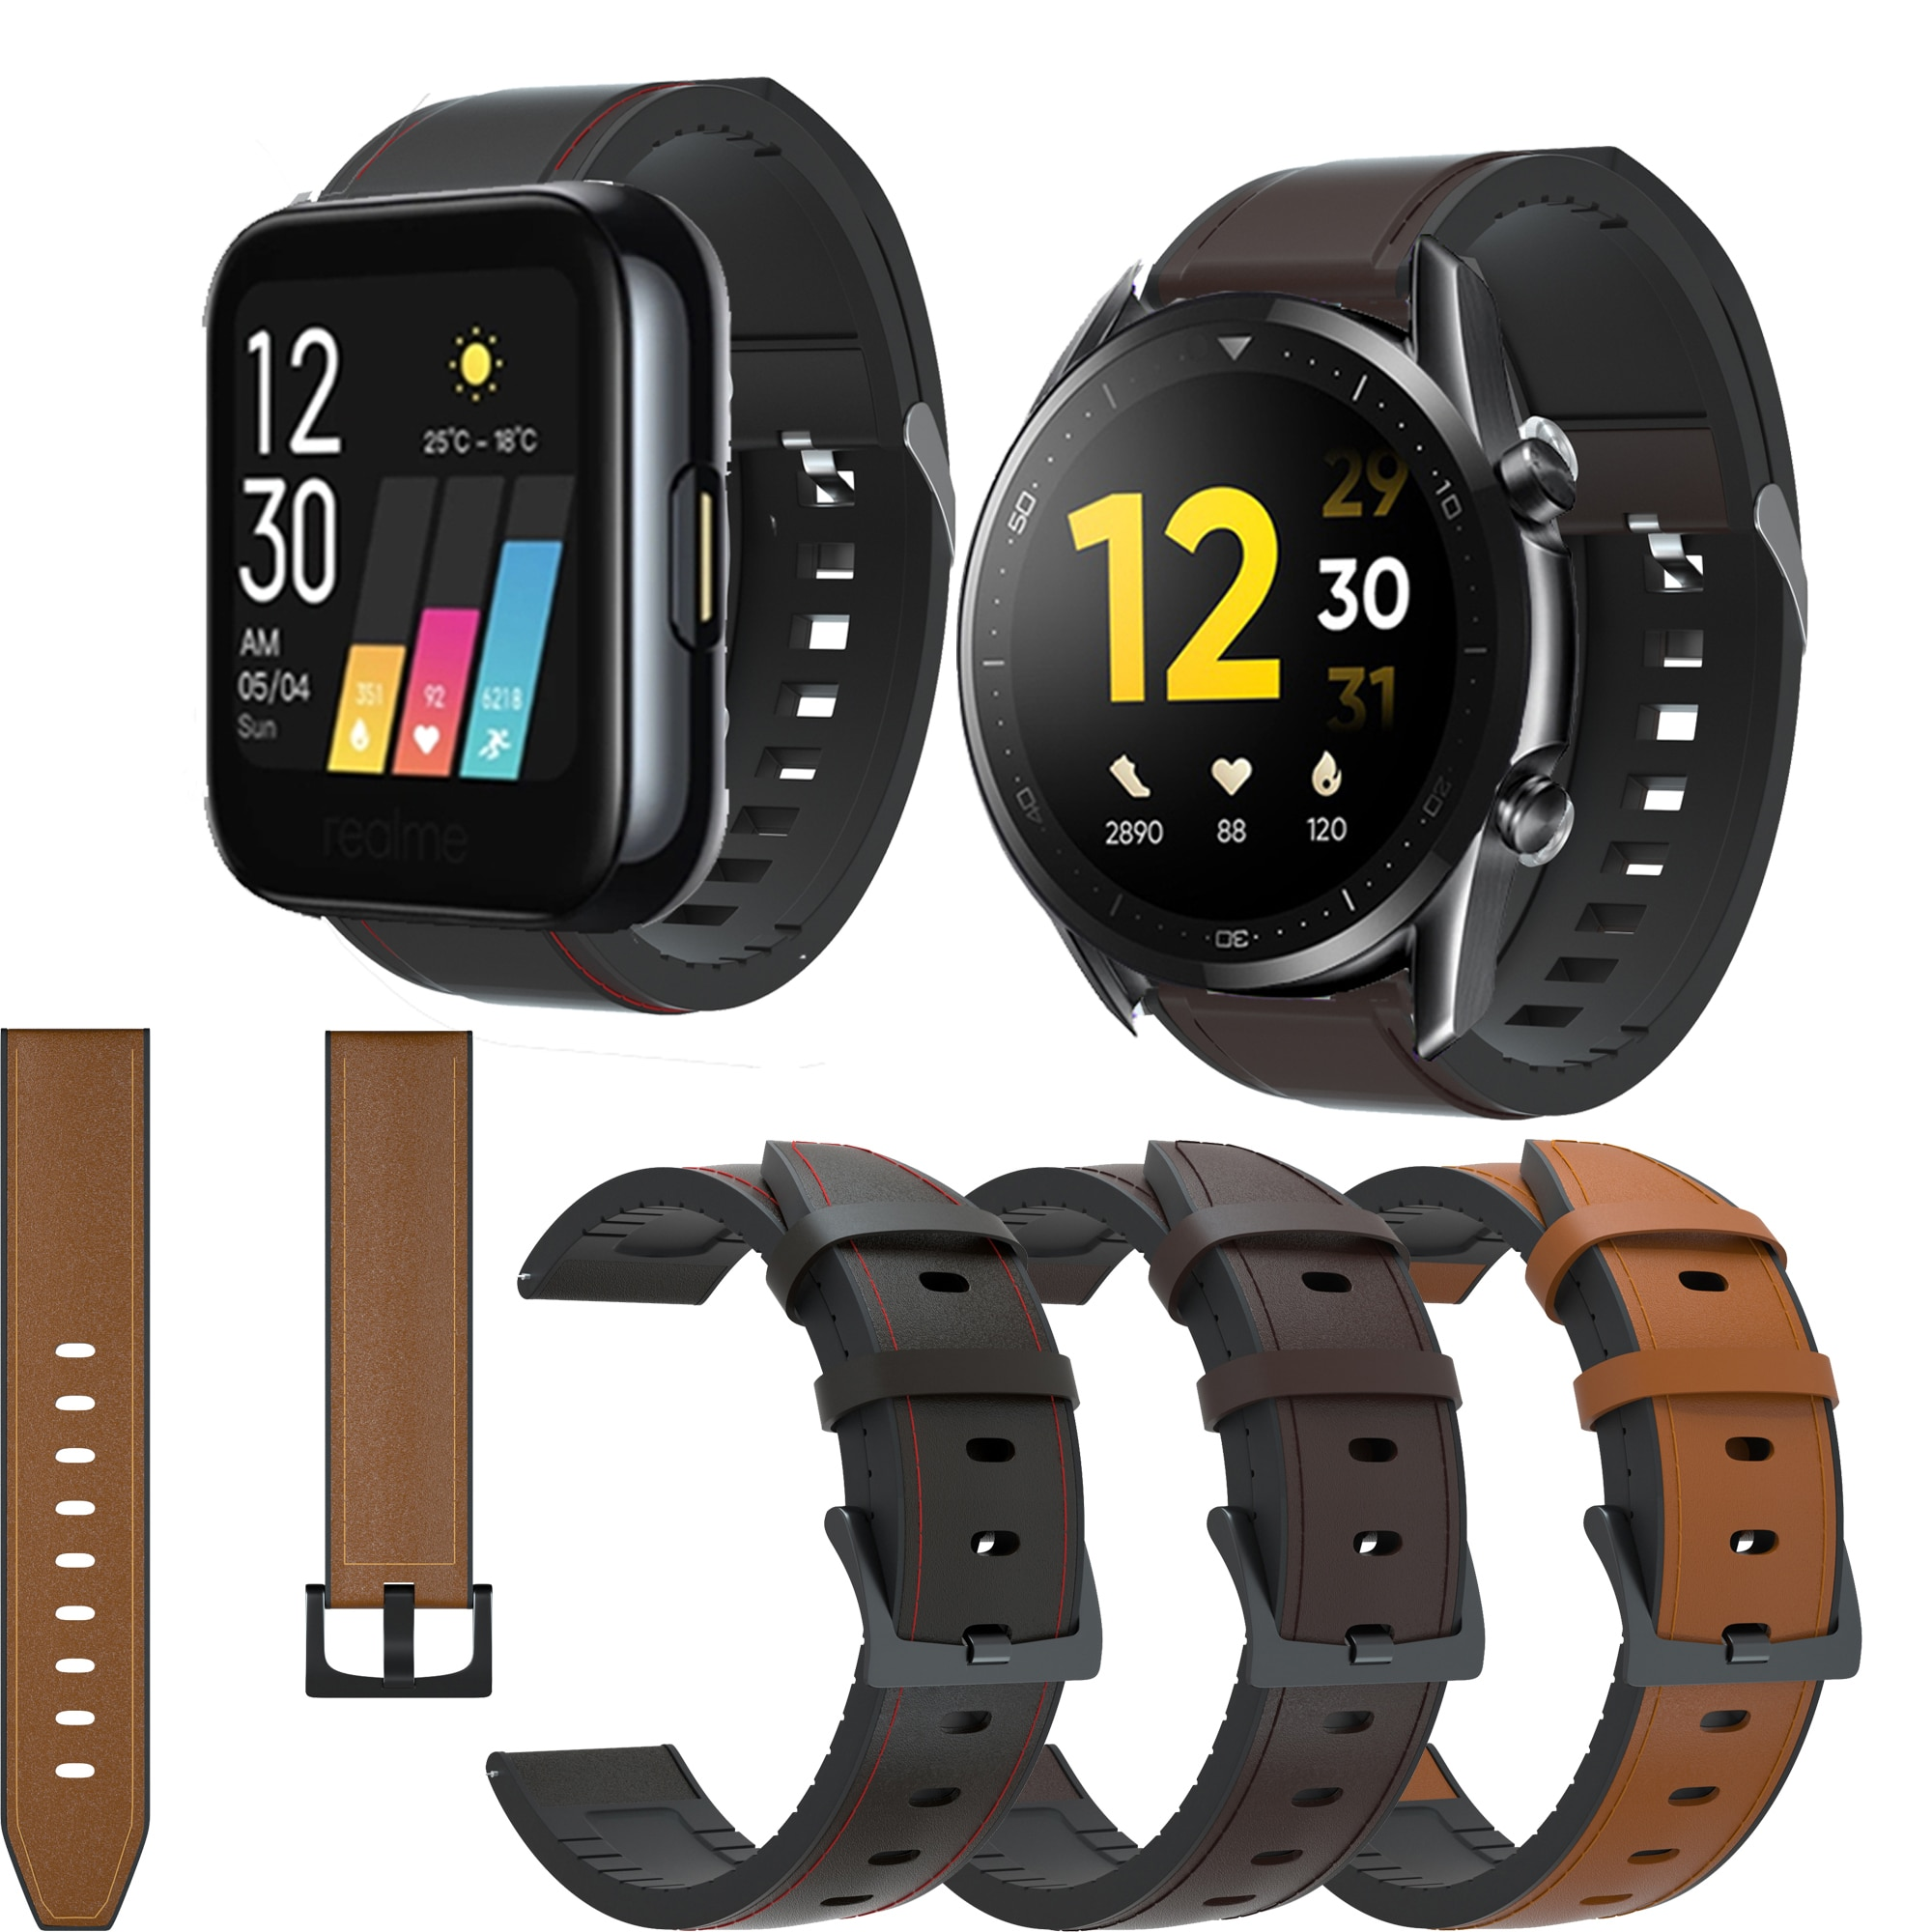 yayuu 22mm universal top quality vertical nylon watchband sports strap adjustable wristband replacement smart watch straps 20 22mm Leather Watchband for Realme Watch S Smart Watch Strap Sport Bracelet Replacement Band for Realme Watch Wristband correa